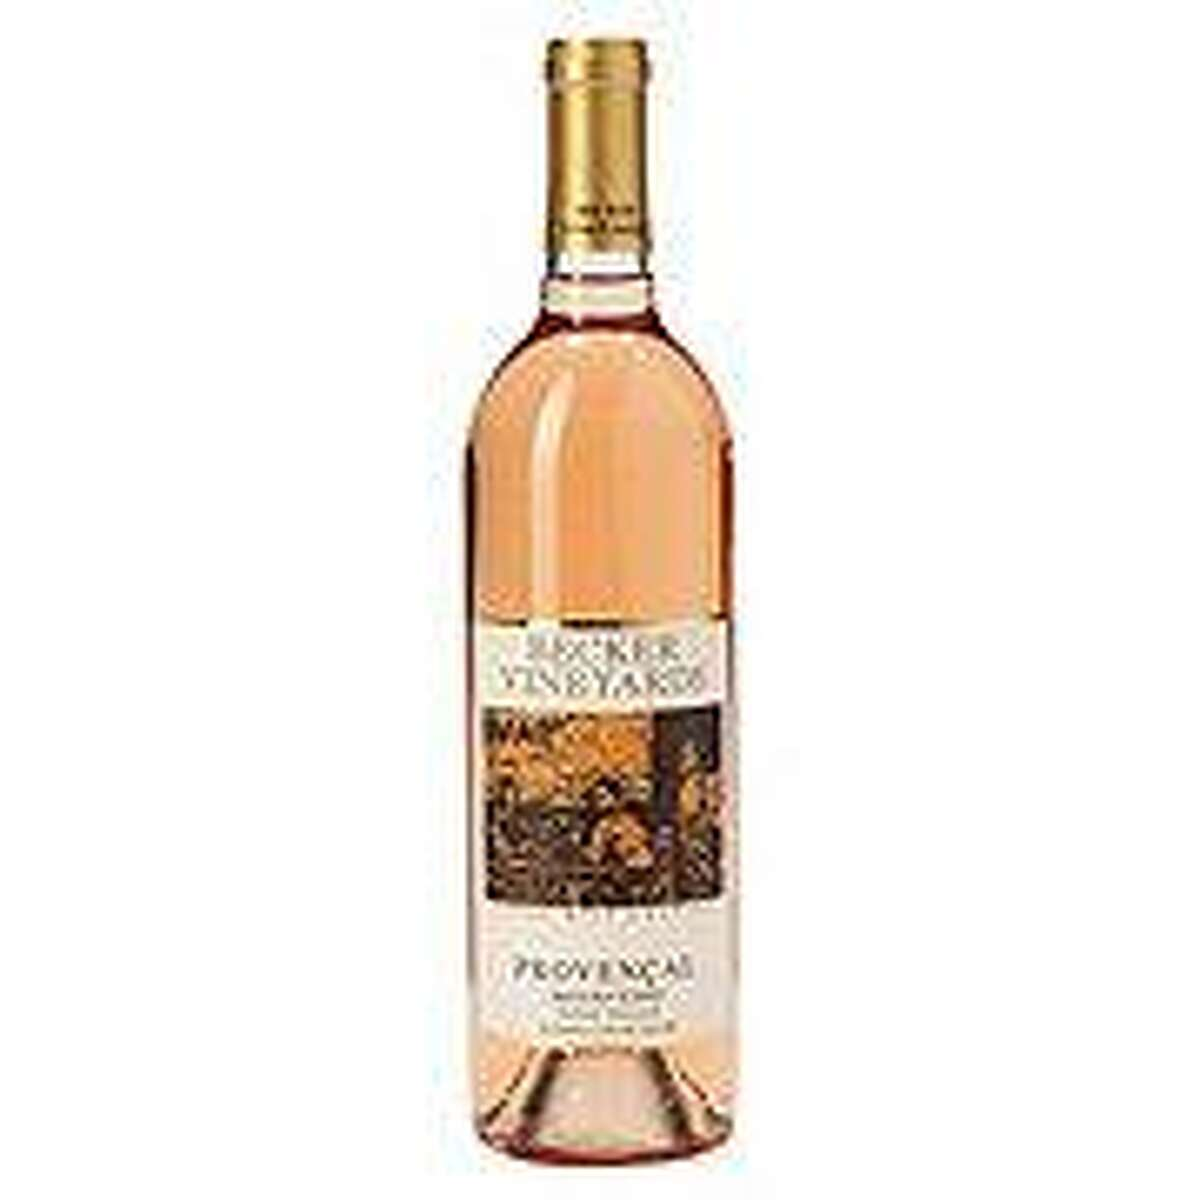 Becker Vineyards Provencal Mouvedere:This Rose' has deep floral notes of violet, peach and raspberry with candied watermelon.